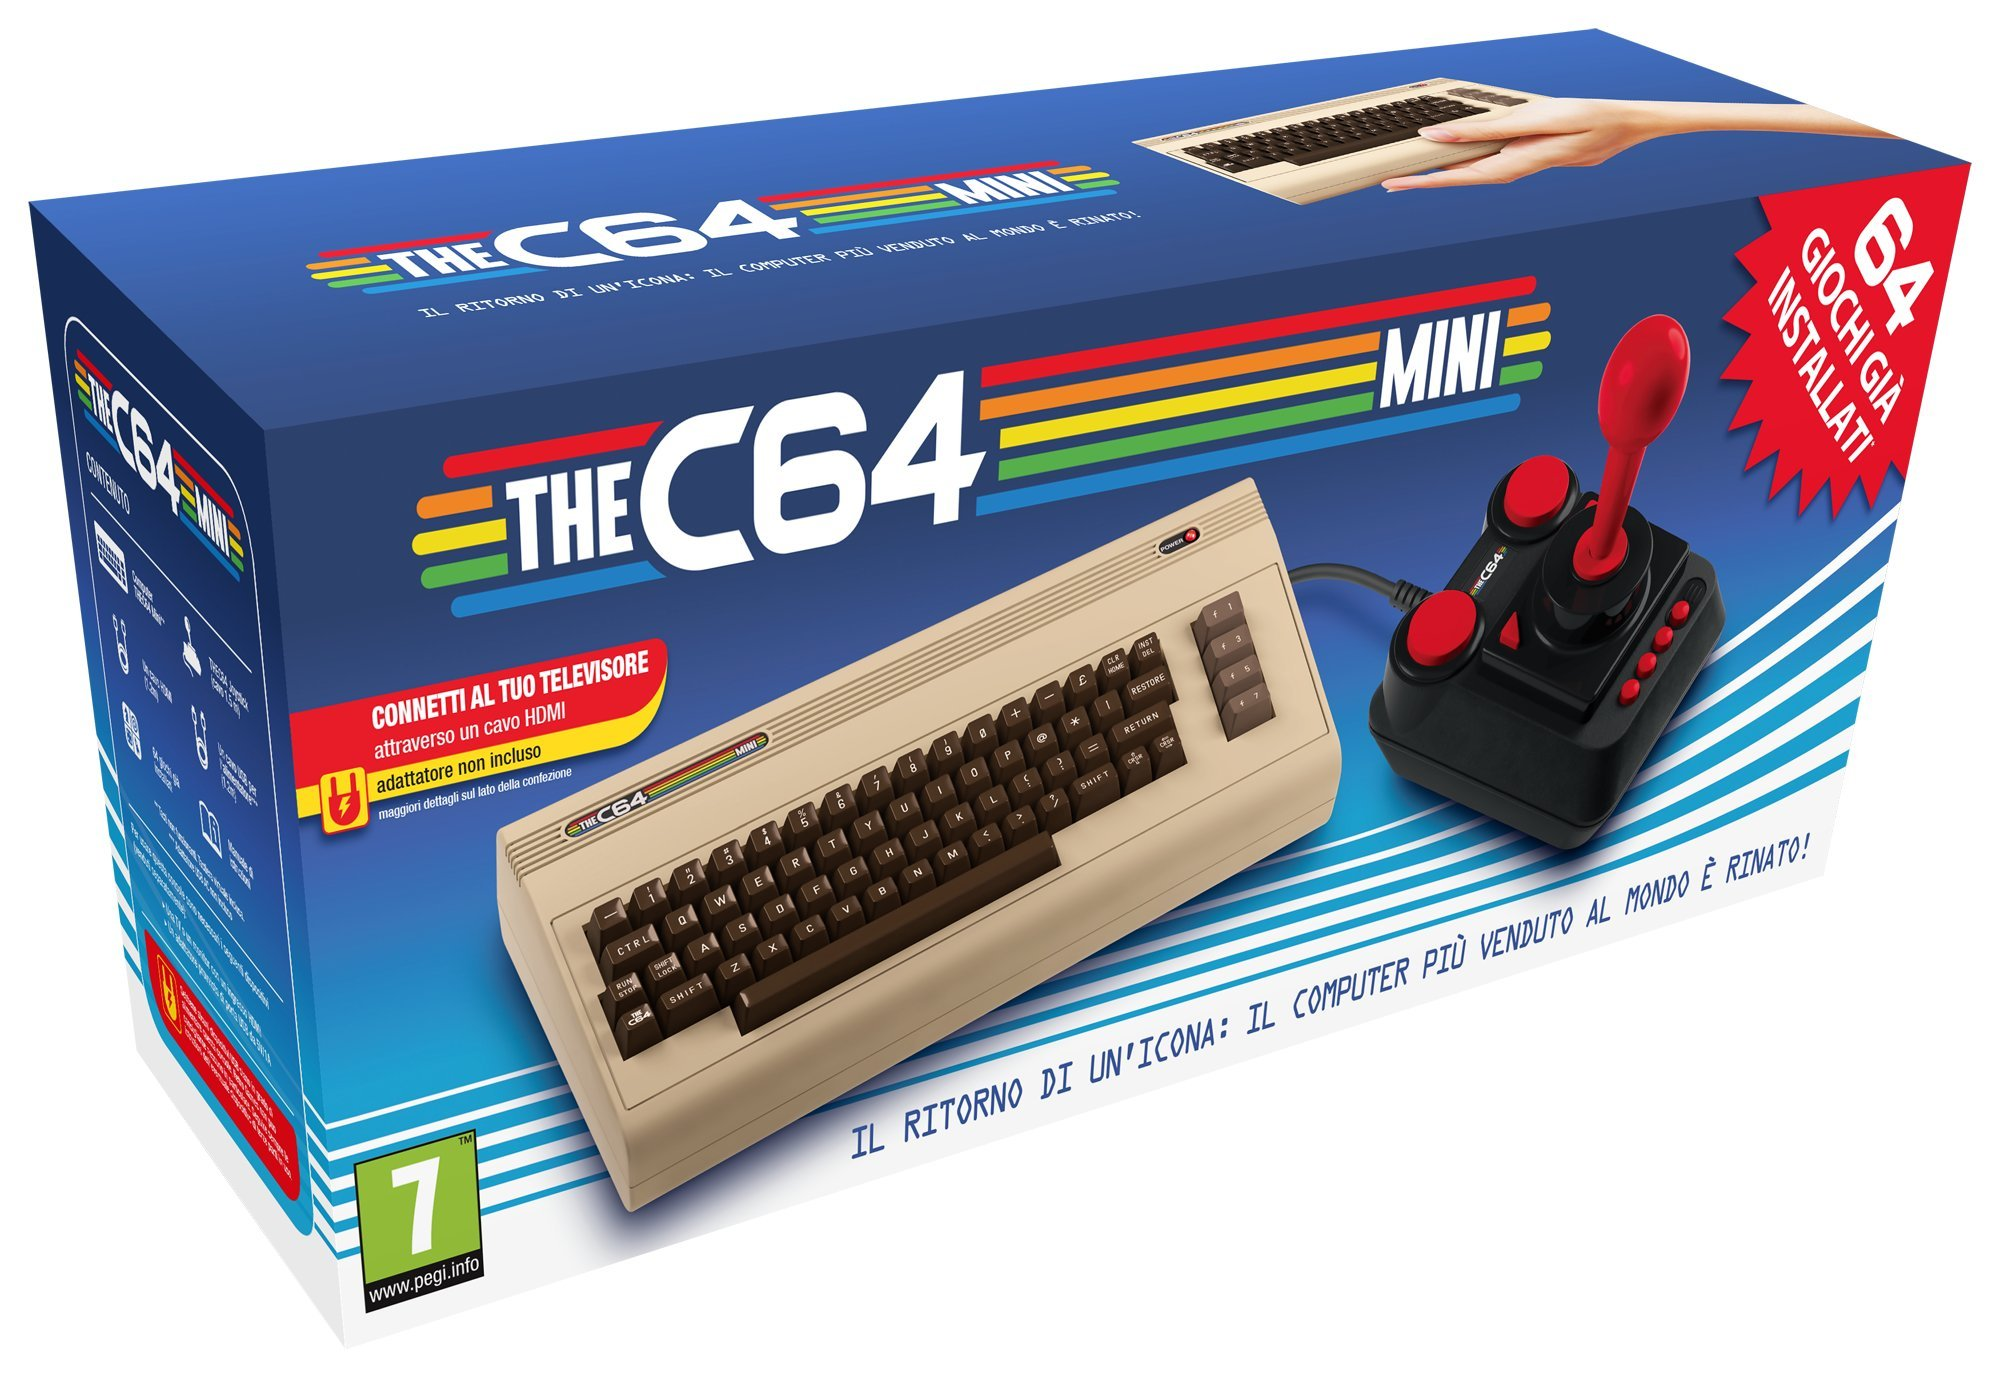 The C64 Mini Console Videogames Deep Silver (EU IMPORT) + 1 Joystick + 64 Games Pre-Installed by Retro Games Ltd (Image #1)